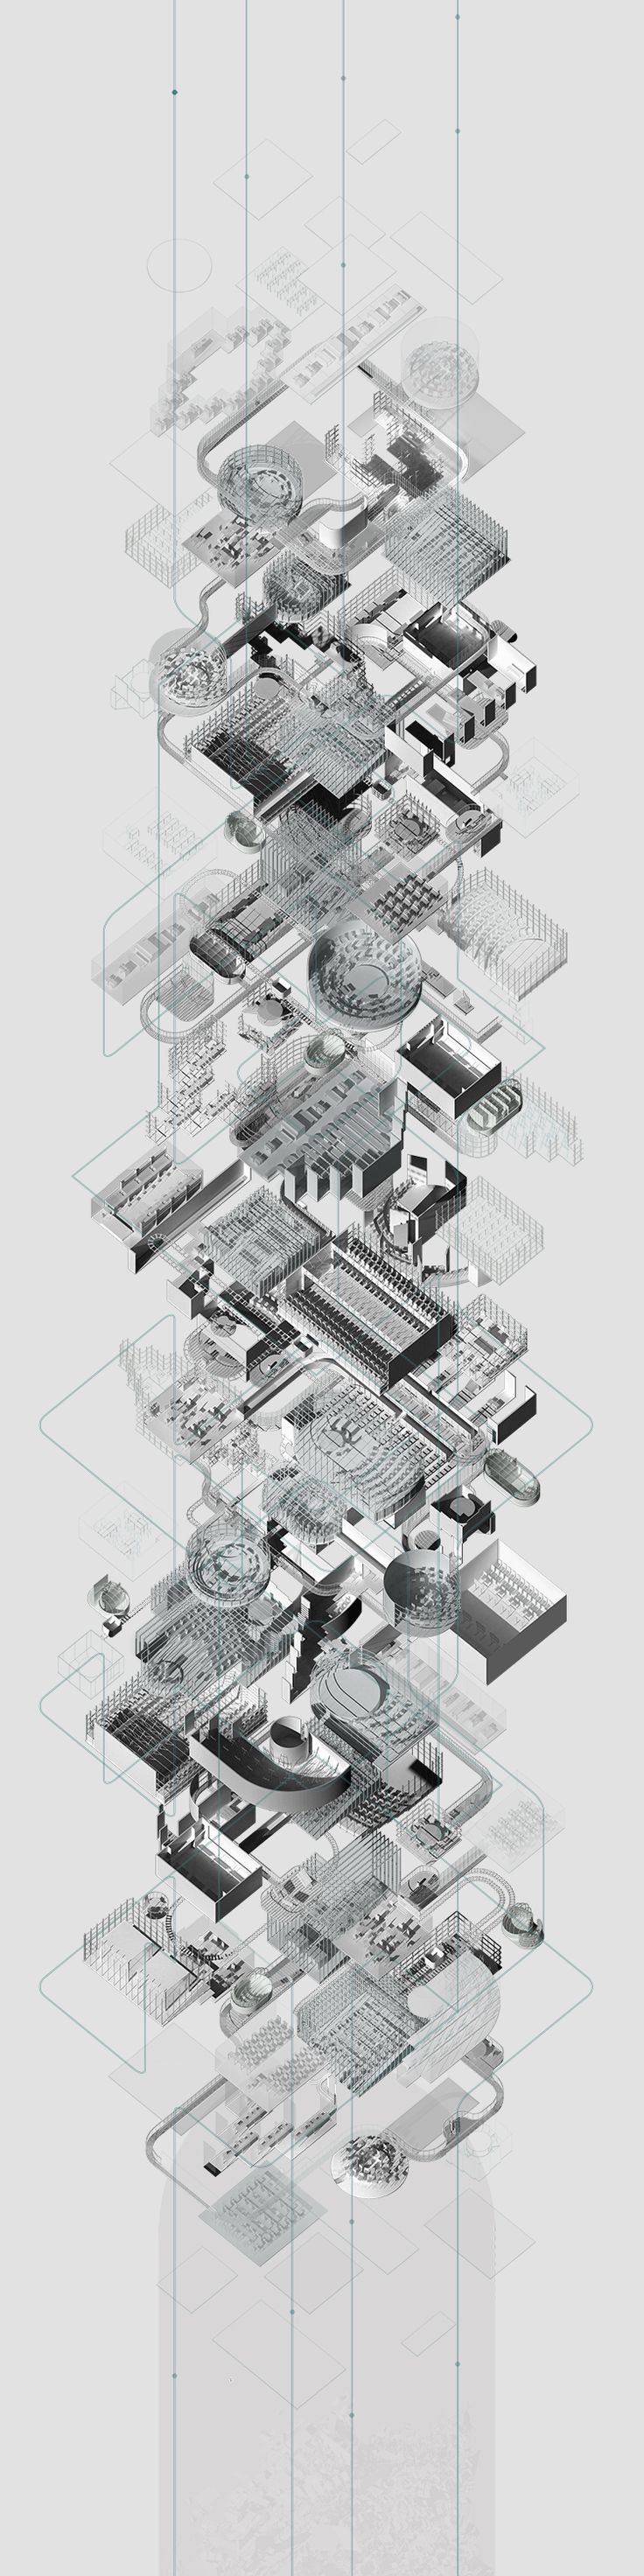 Cool Architecture Design Drawings best 25+ axonometric drawing ideas only on pinterest